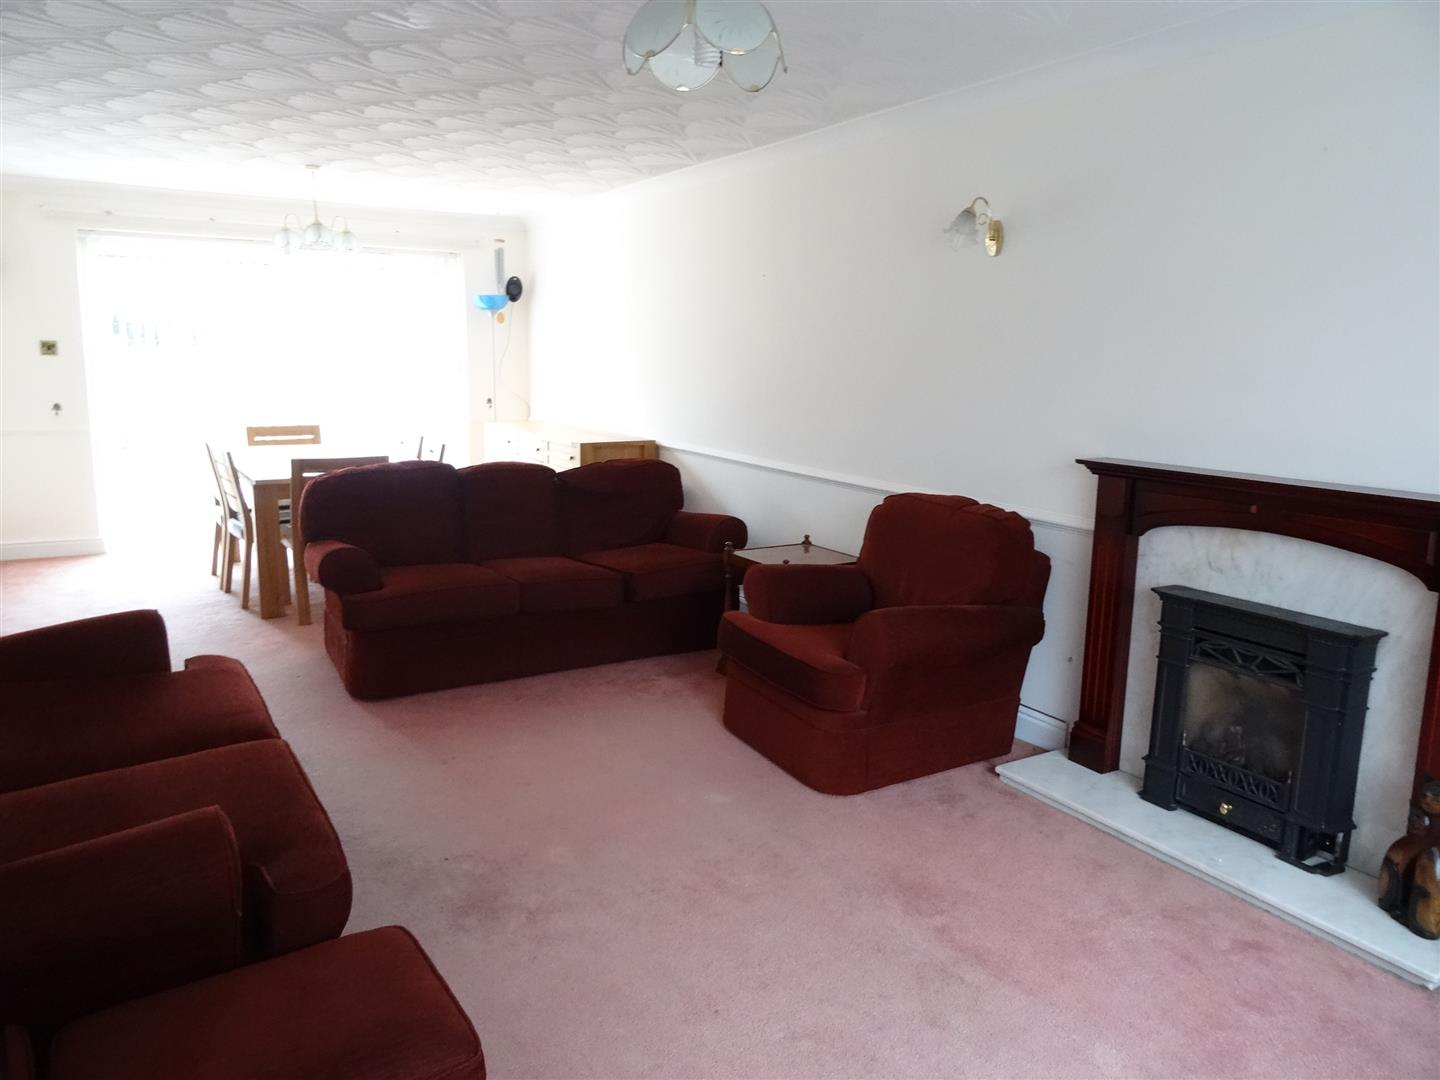 4 Bedrooms House - Detached For Sale 21 Wentworth Drive Carlisle